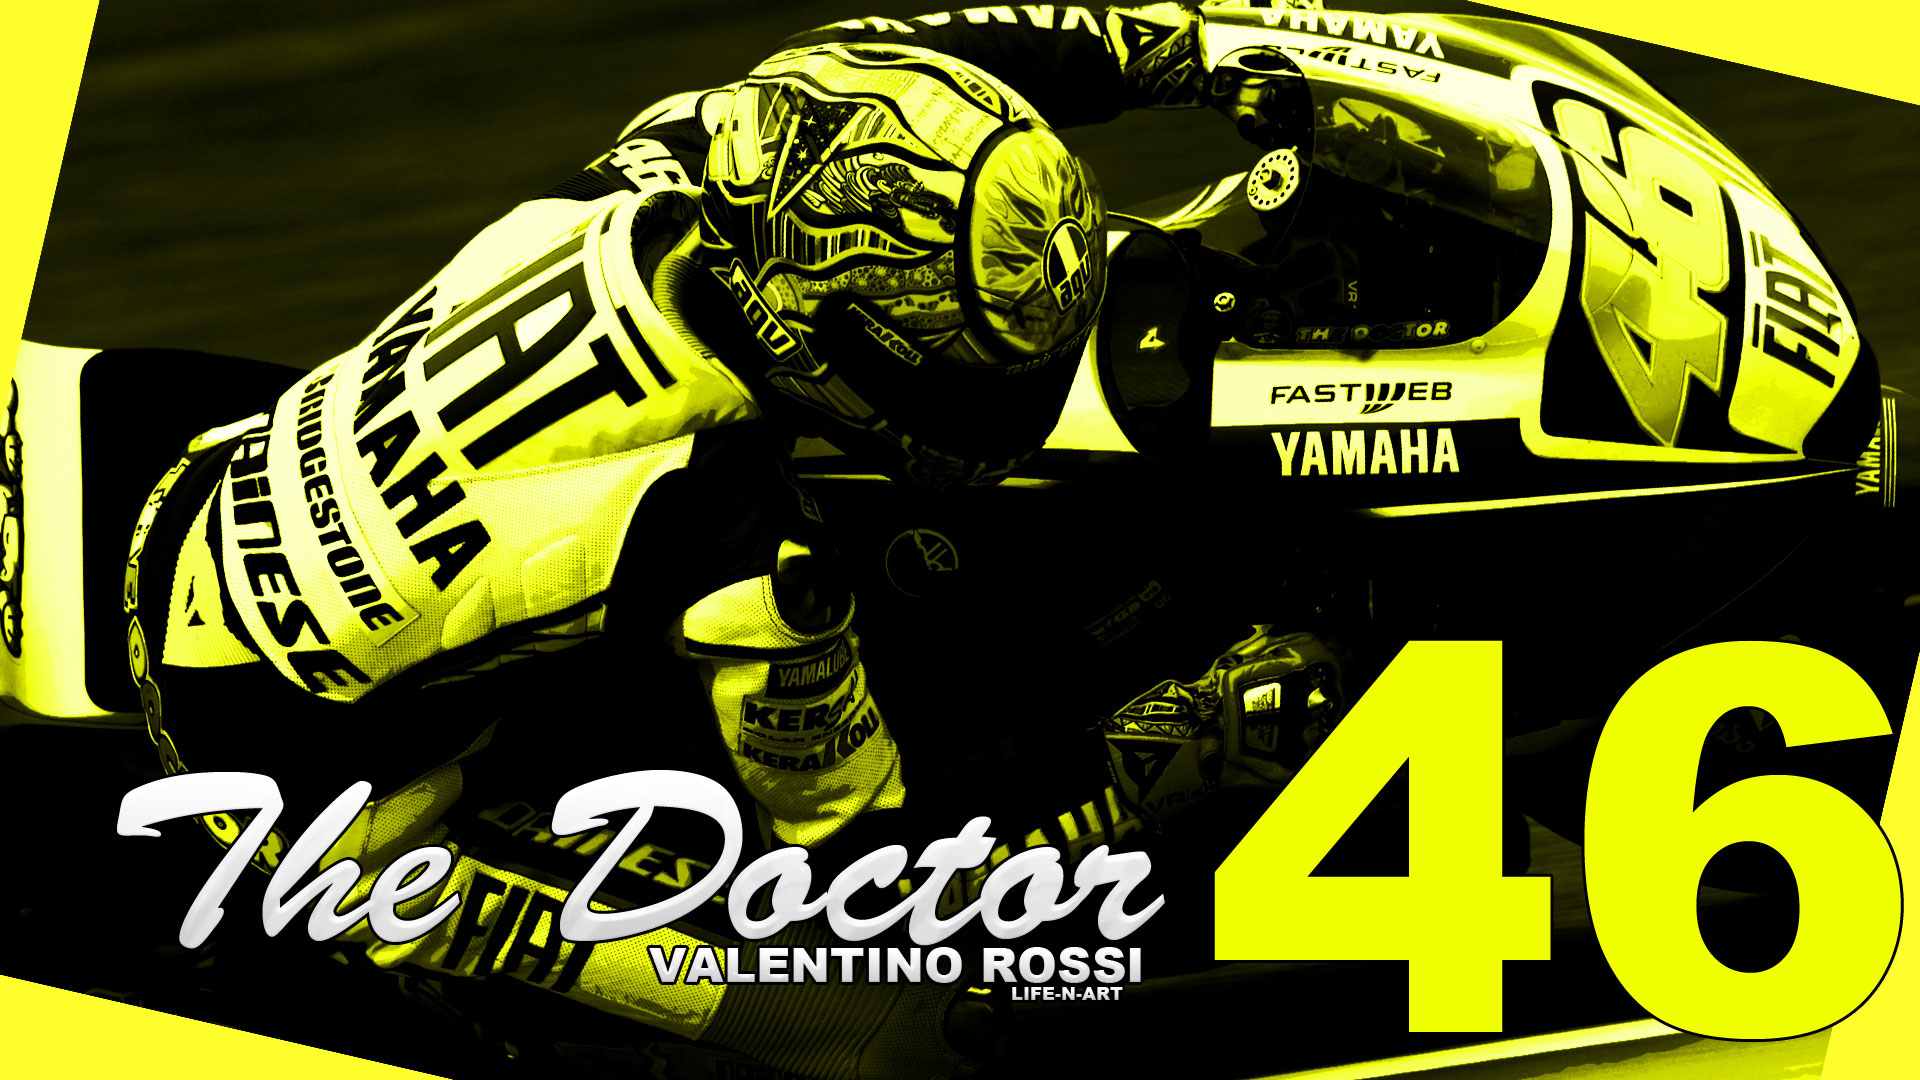 Valentino Rossi Logo Desktop Wallpaper is a hi res Wallpaper 1920x1080